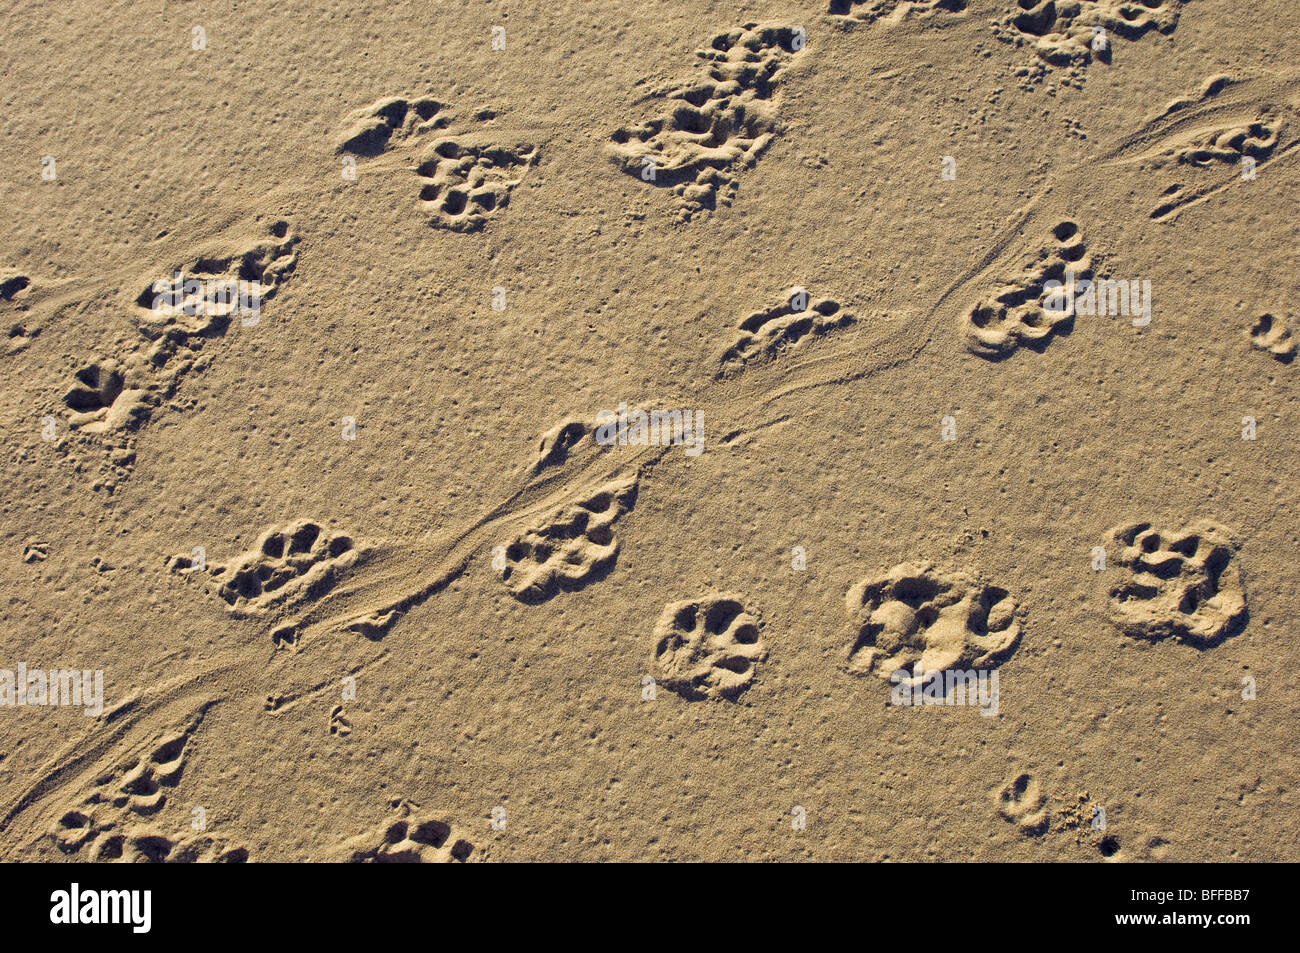 Spoor of cape clawless otter (Aonyx capensis) in sand - Stock Image